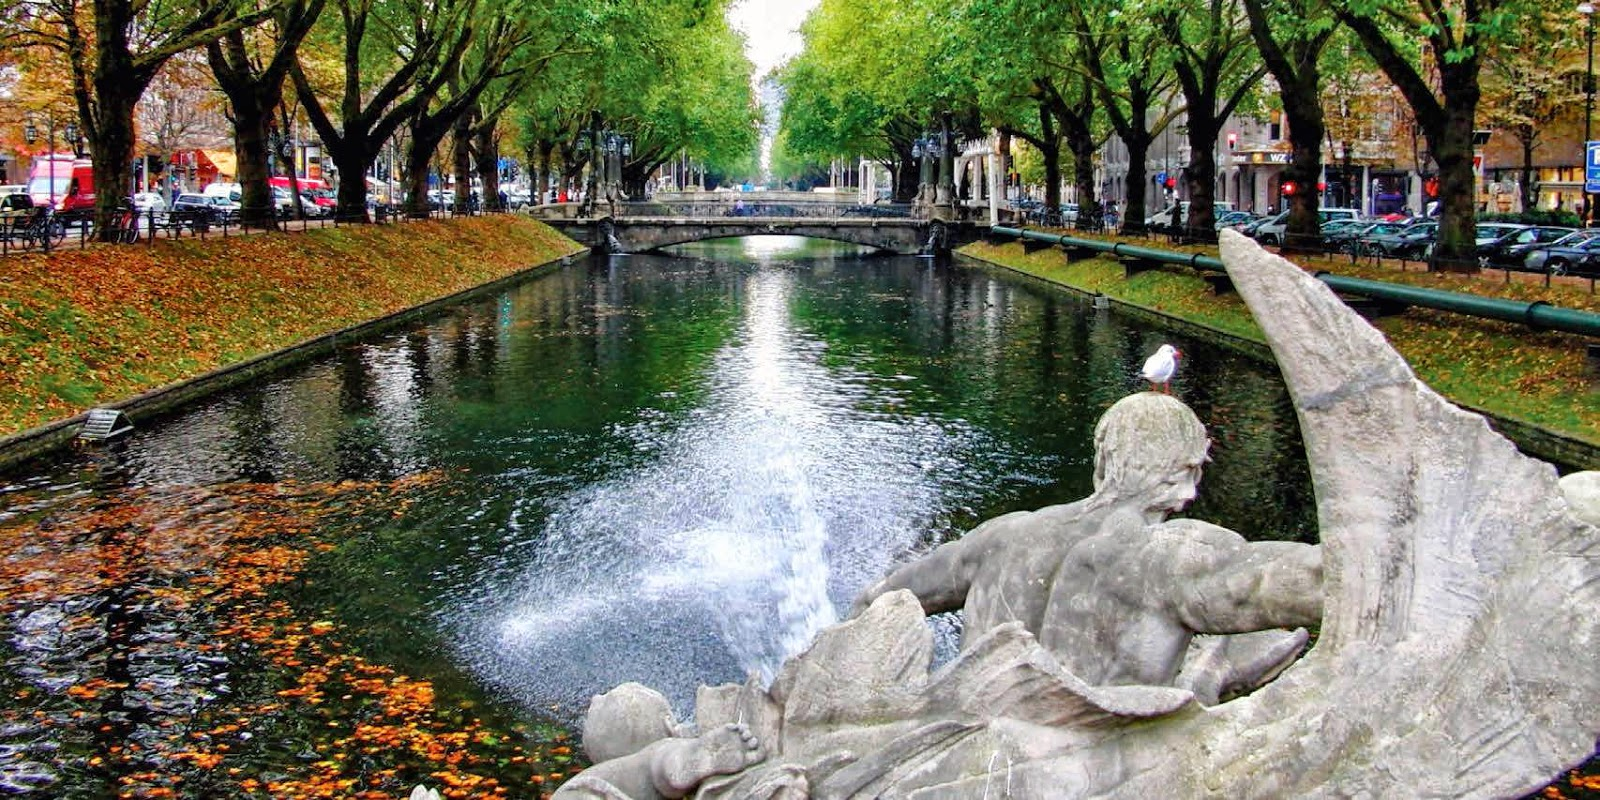 Stadtwerke Dusseldorf, the city's public works department, uses a new state-of-the-art control system based on Wonderware software to help automate the City of Dusseldorf's waterworks plants.